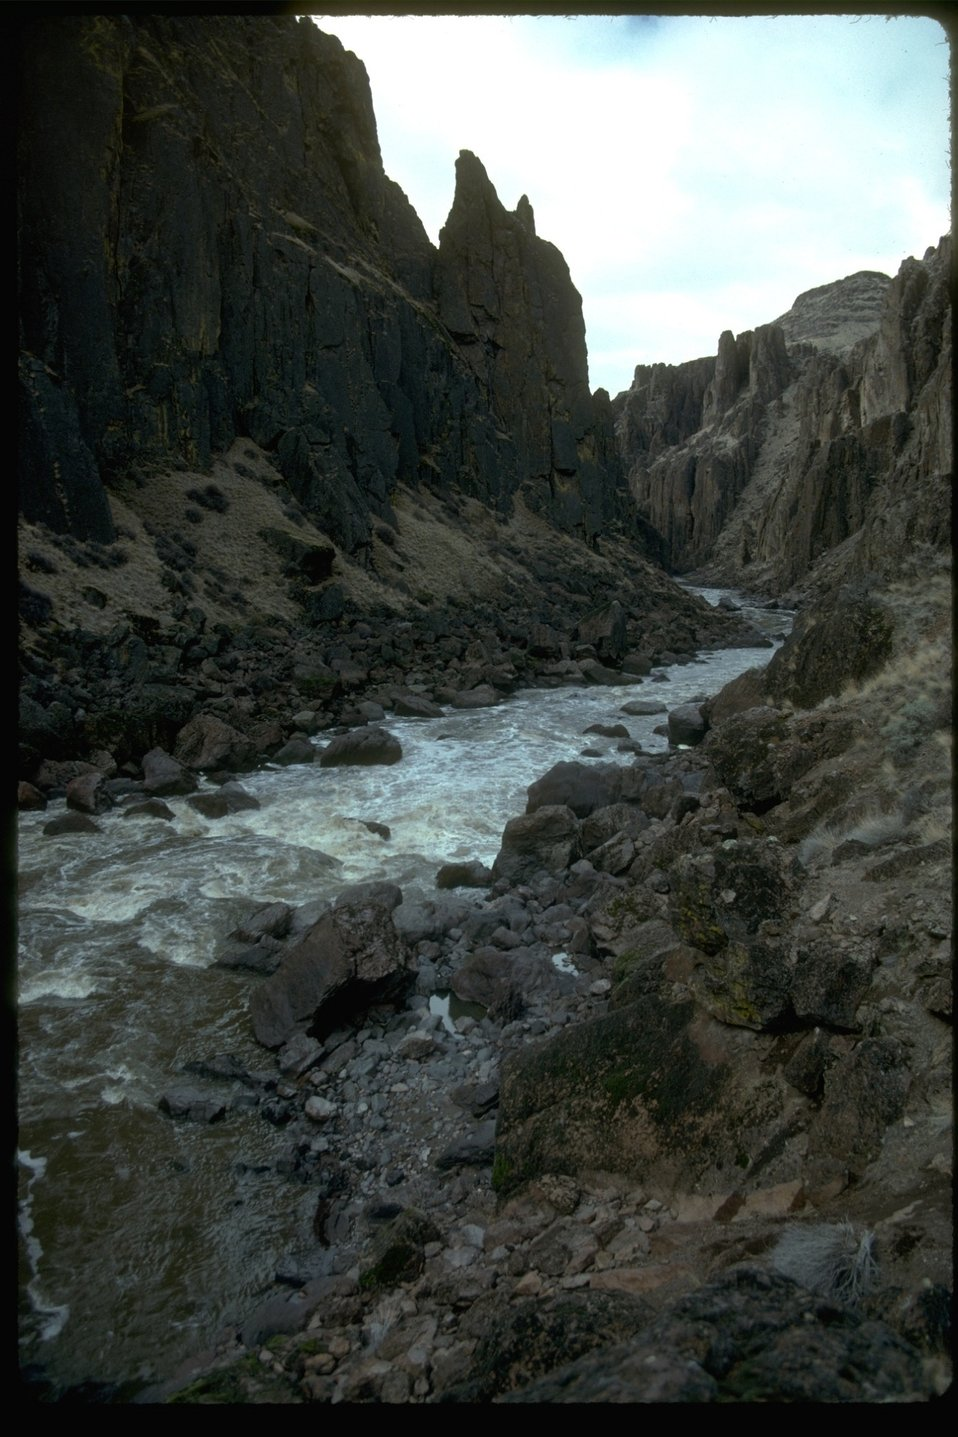 The Widow Maker Rapids on the Owyhee Wild River in the Owyhee Canyon.  OR 3-195